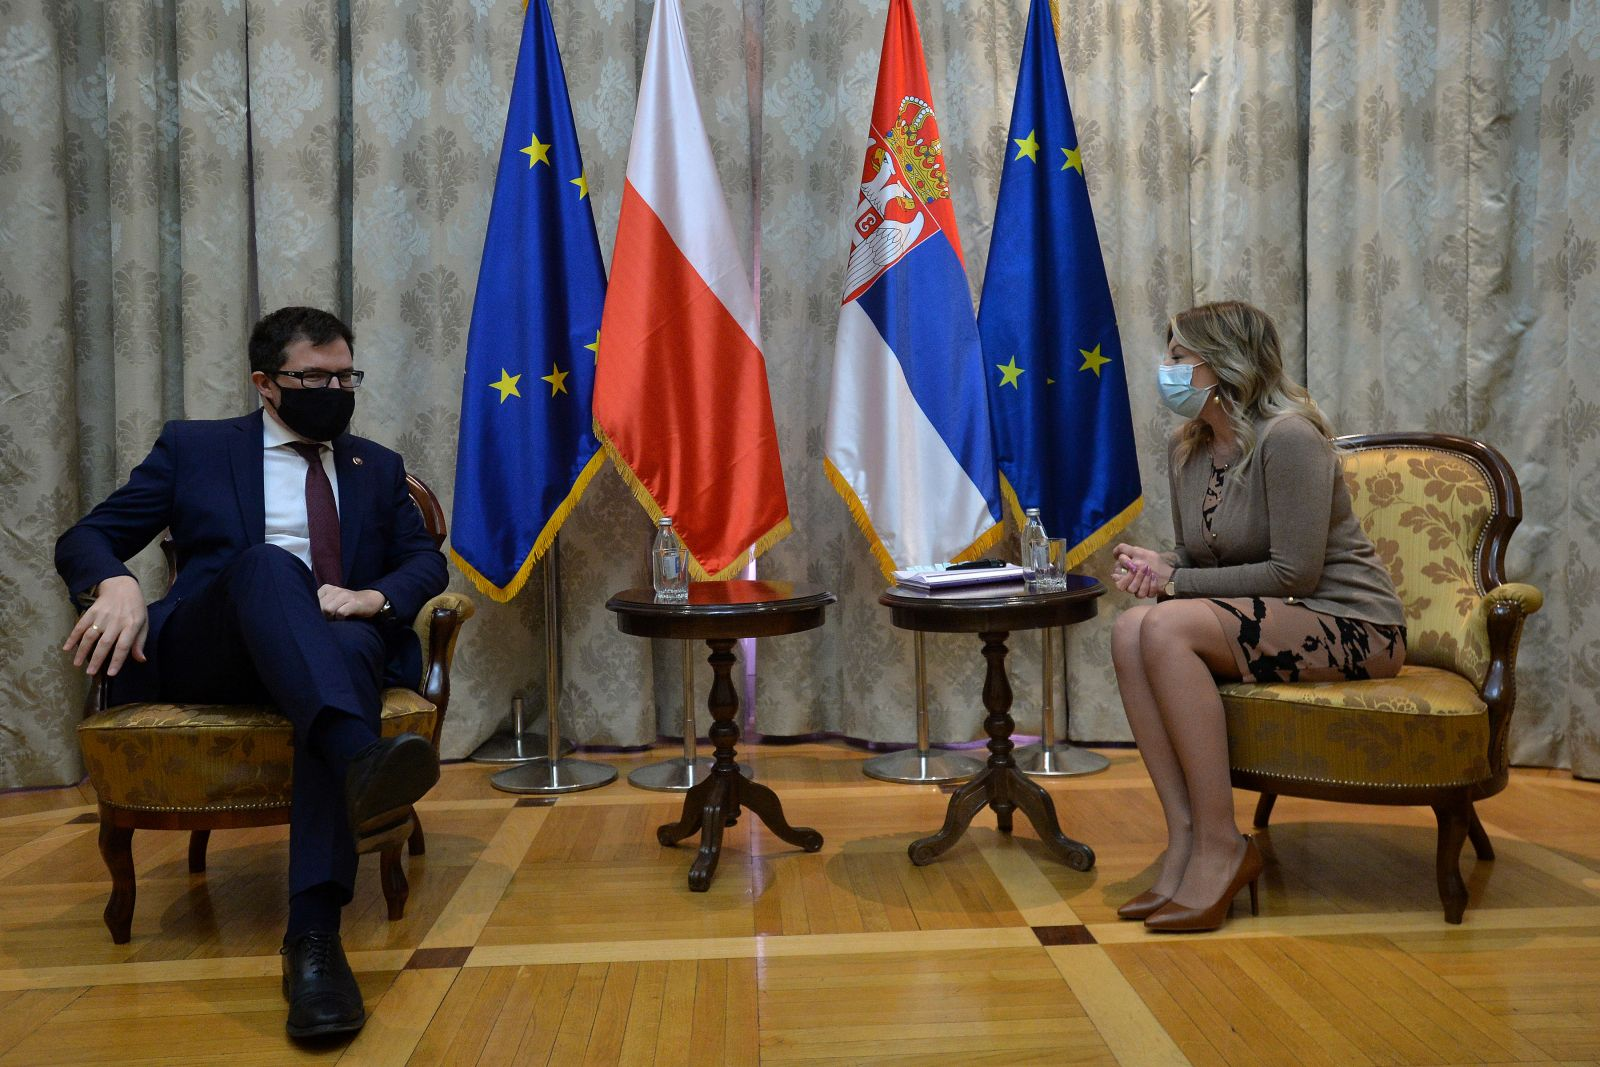 J. Joksimović: Poland supports enlargement and Serbia's EU path